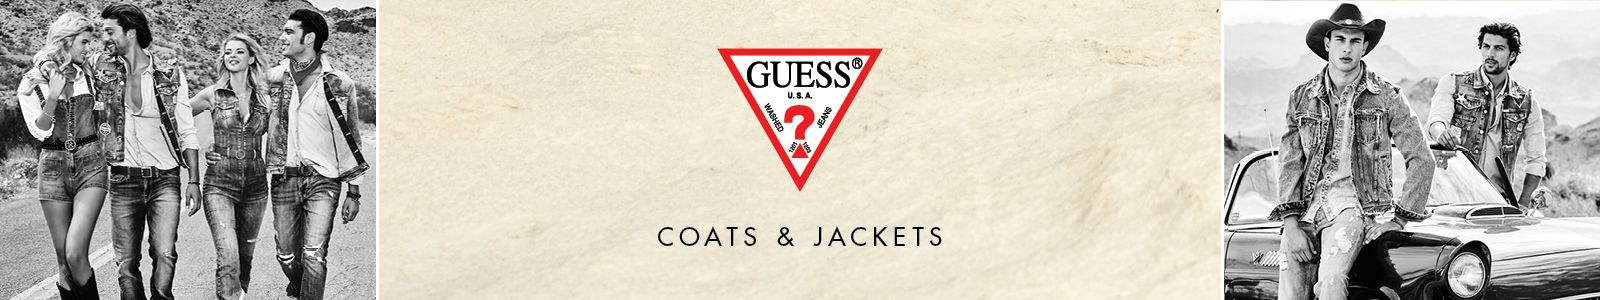 Guess, Coats and Jackets